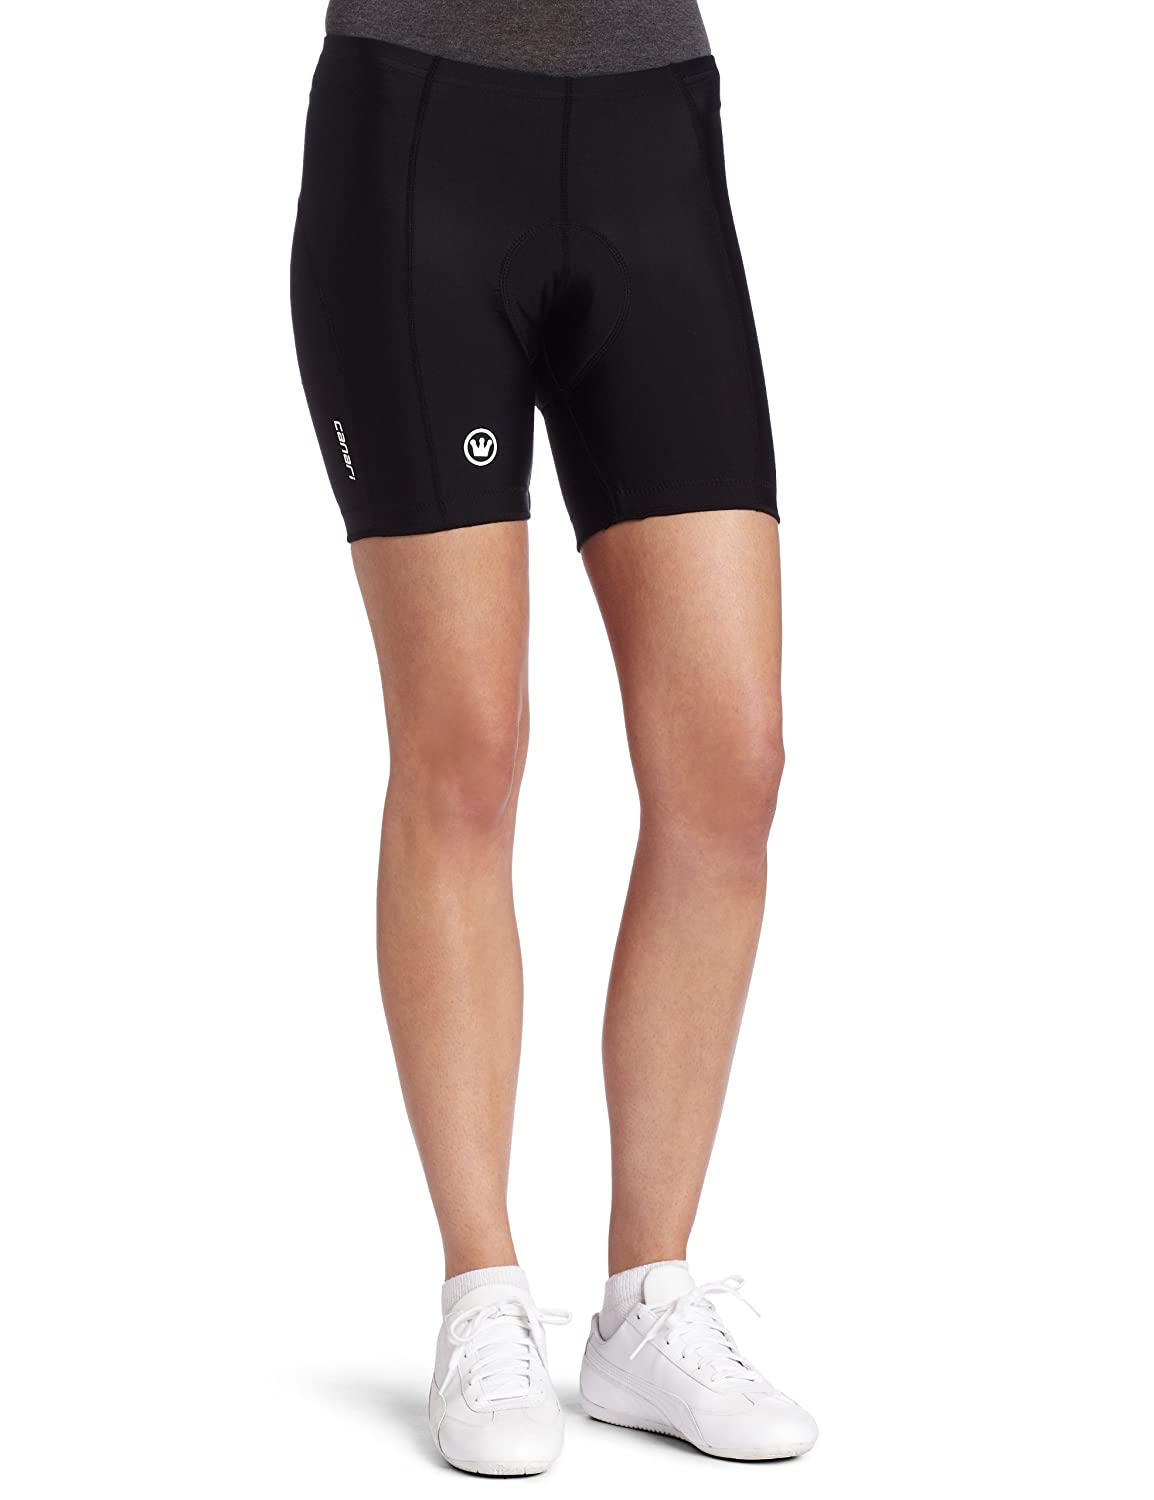 8c37d2ce0ee2 Amazon.com : Canari Cyclewear Women's Pro Gel Short Padded Cycling Short :  Cycling Compression Shorts : Clothing